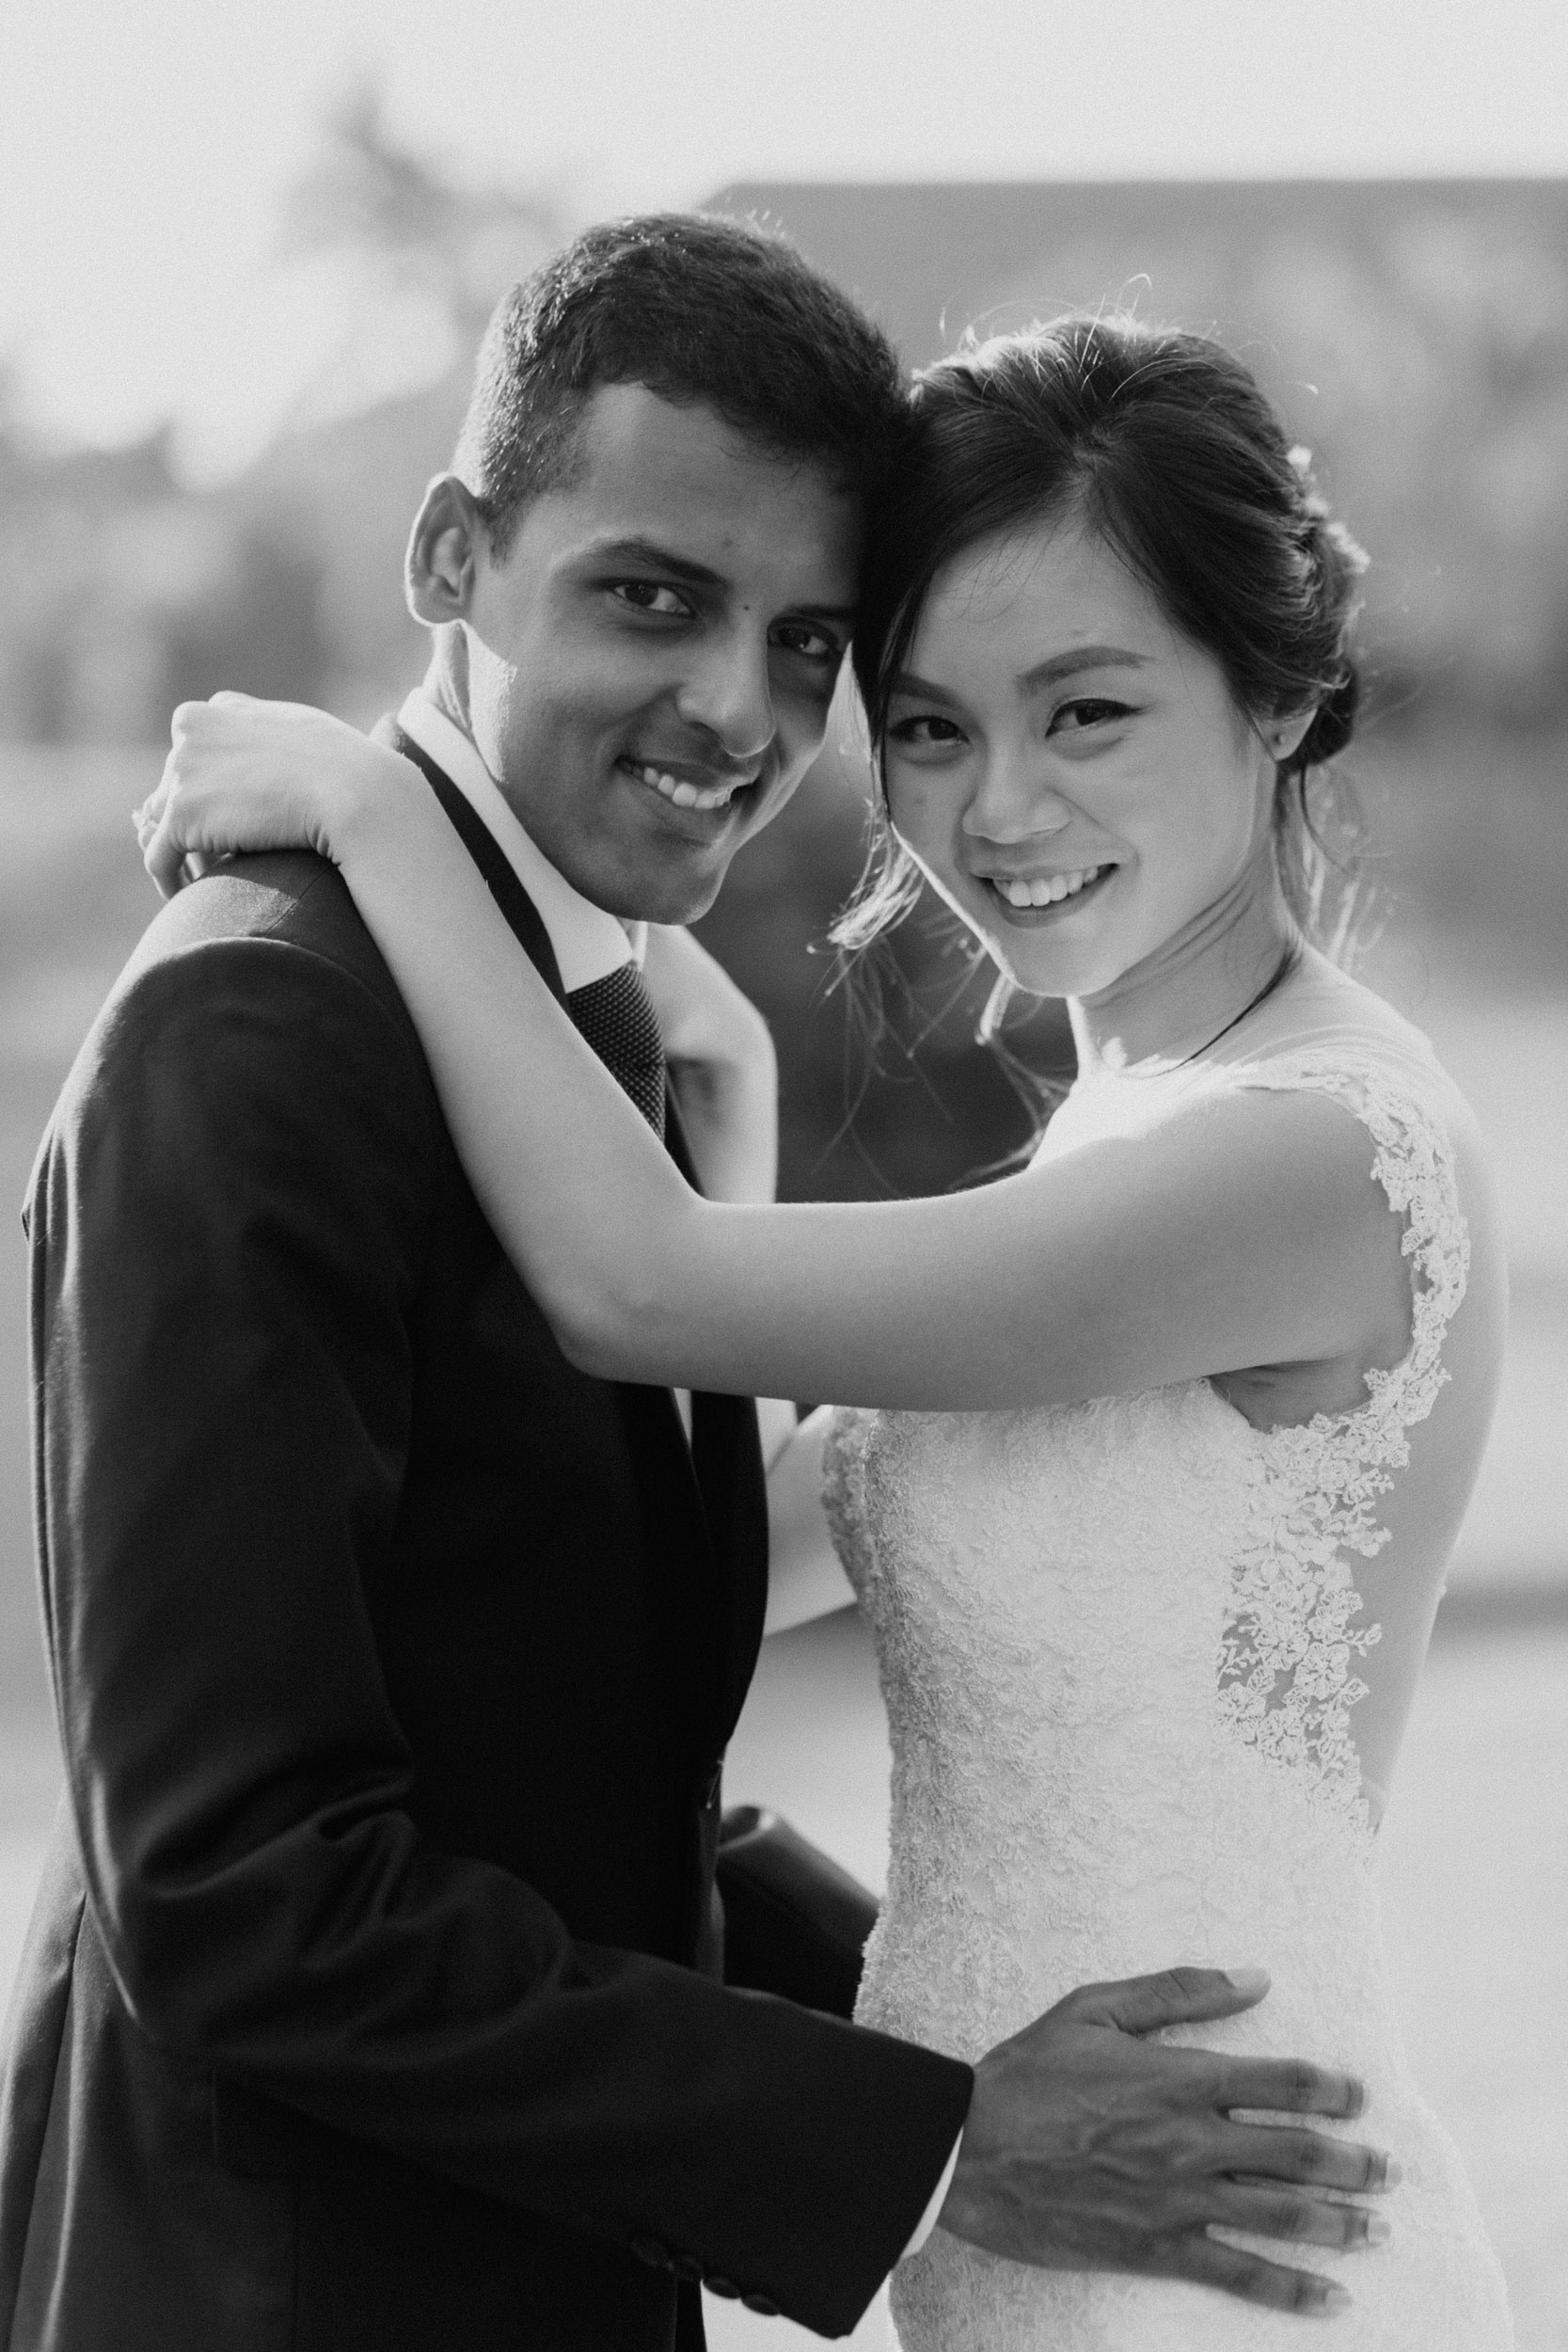 singapore-wedding-photographer-wemadethese-suriya-xinqi-15.jpg